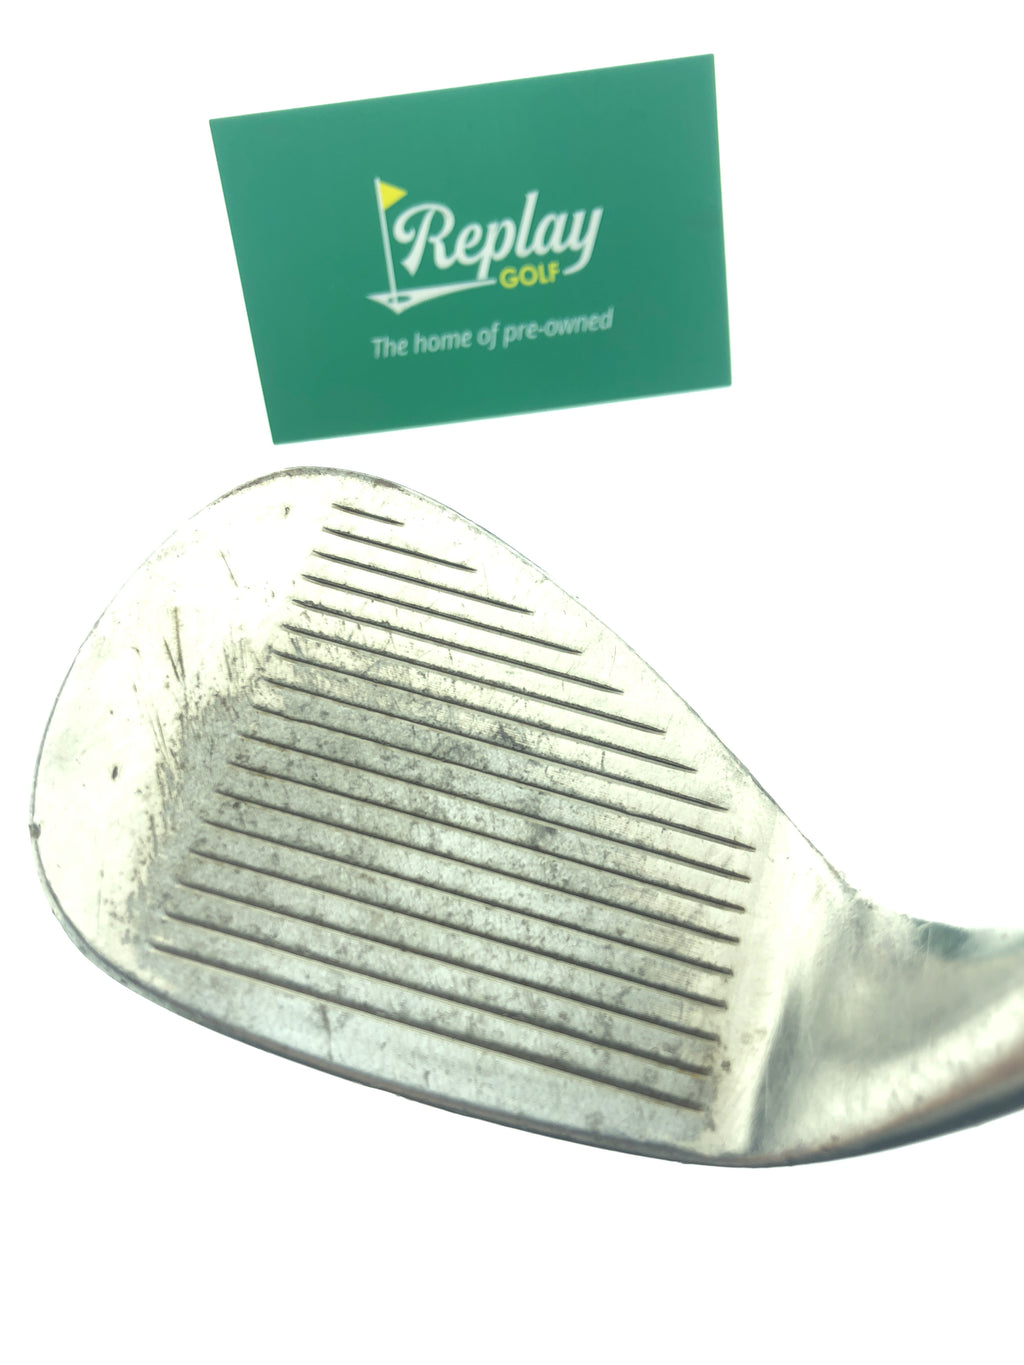 Callaway Rogue Sub Zero TOUR ISSUE Driver Head / 10.5 Degree / HEAD ONLY